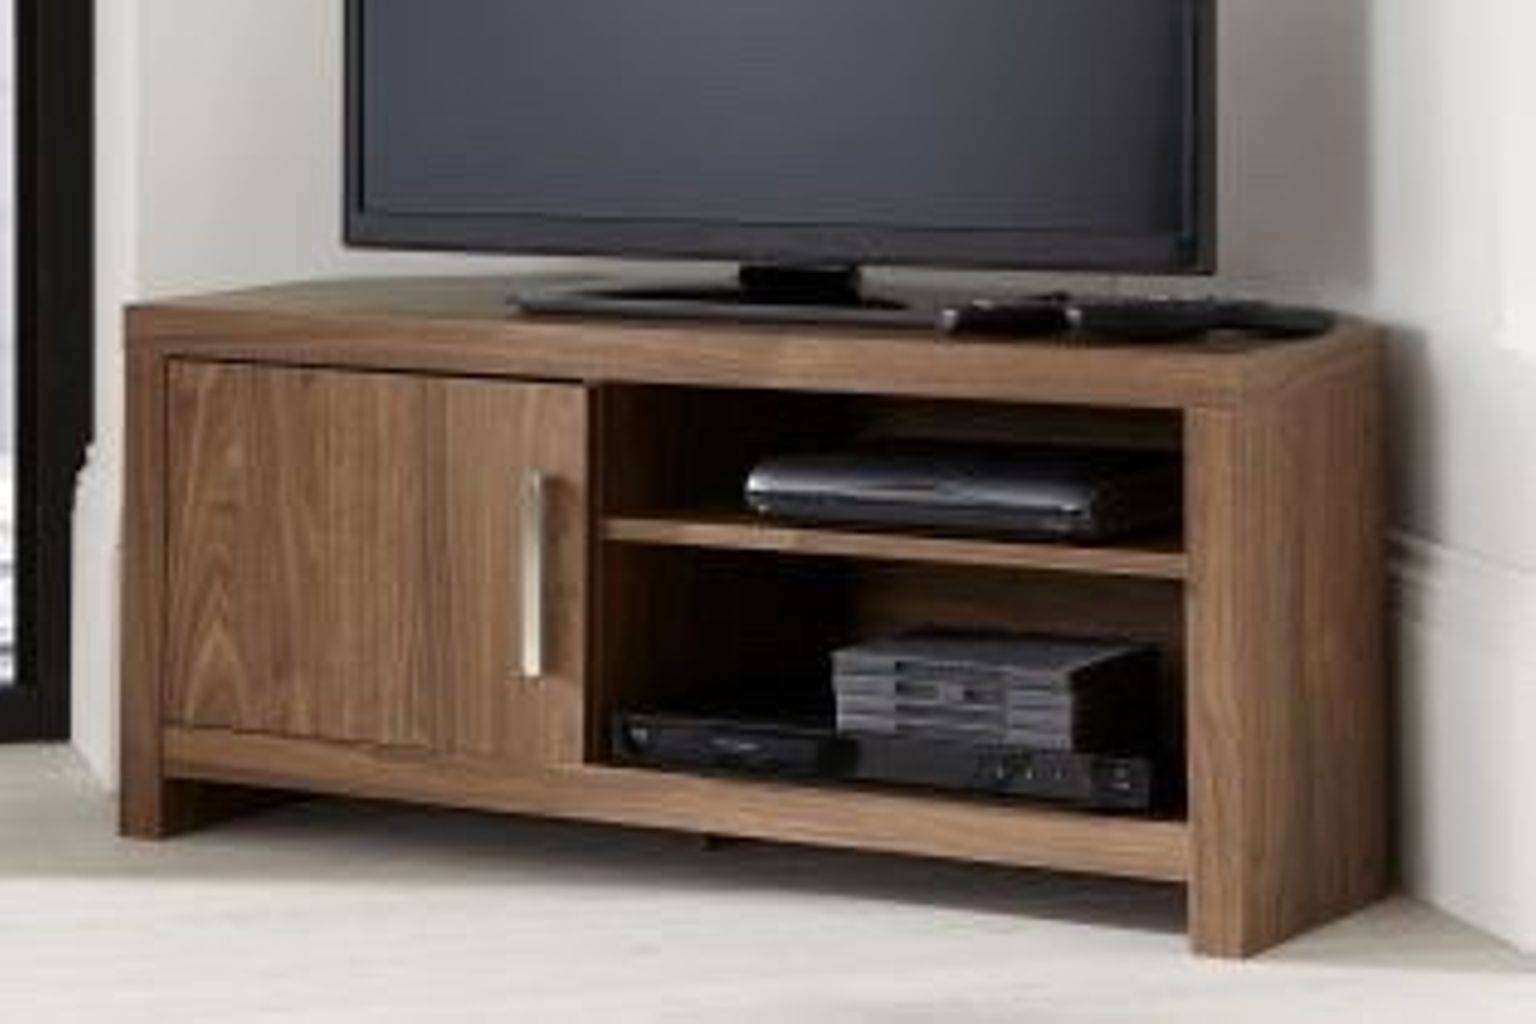 Used Next Mode Walnut Tv Cabinet And Coffee Table In G41 Glasgow within Walnut Tv Cabinets With Doors (Image 14 of 15)